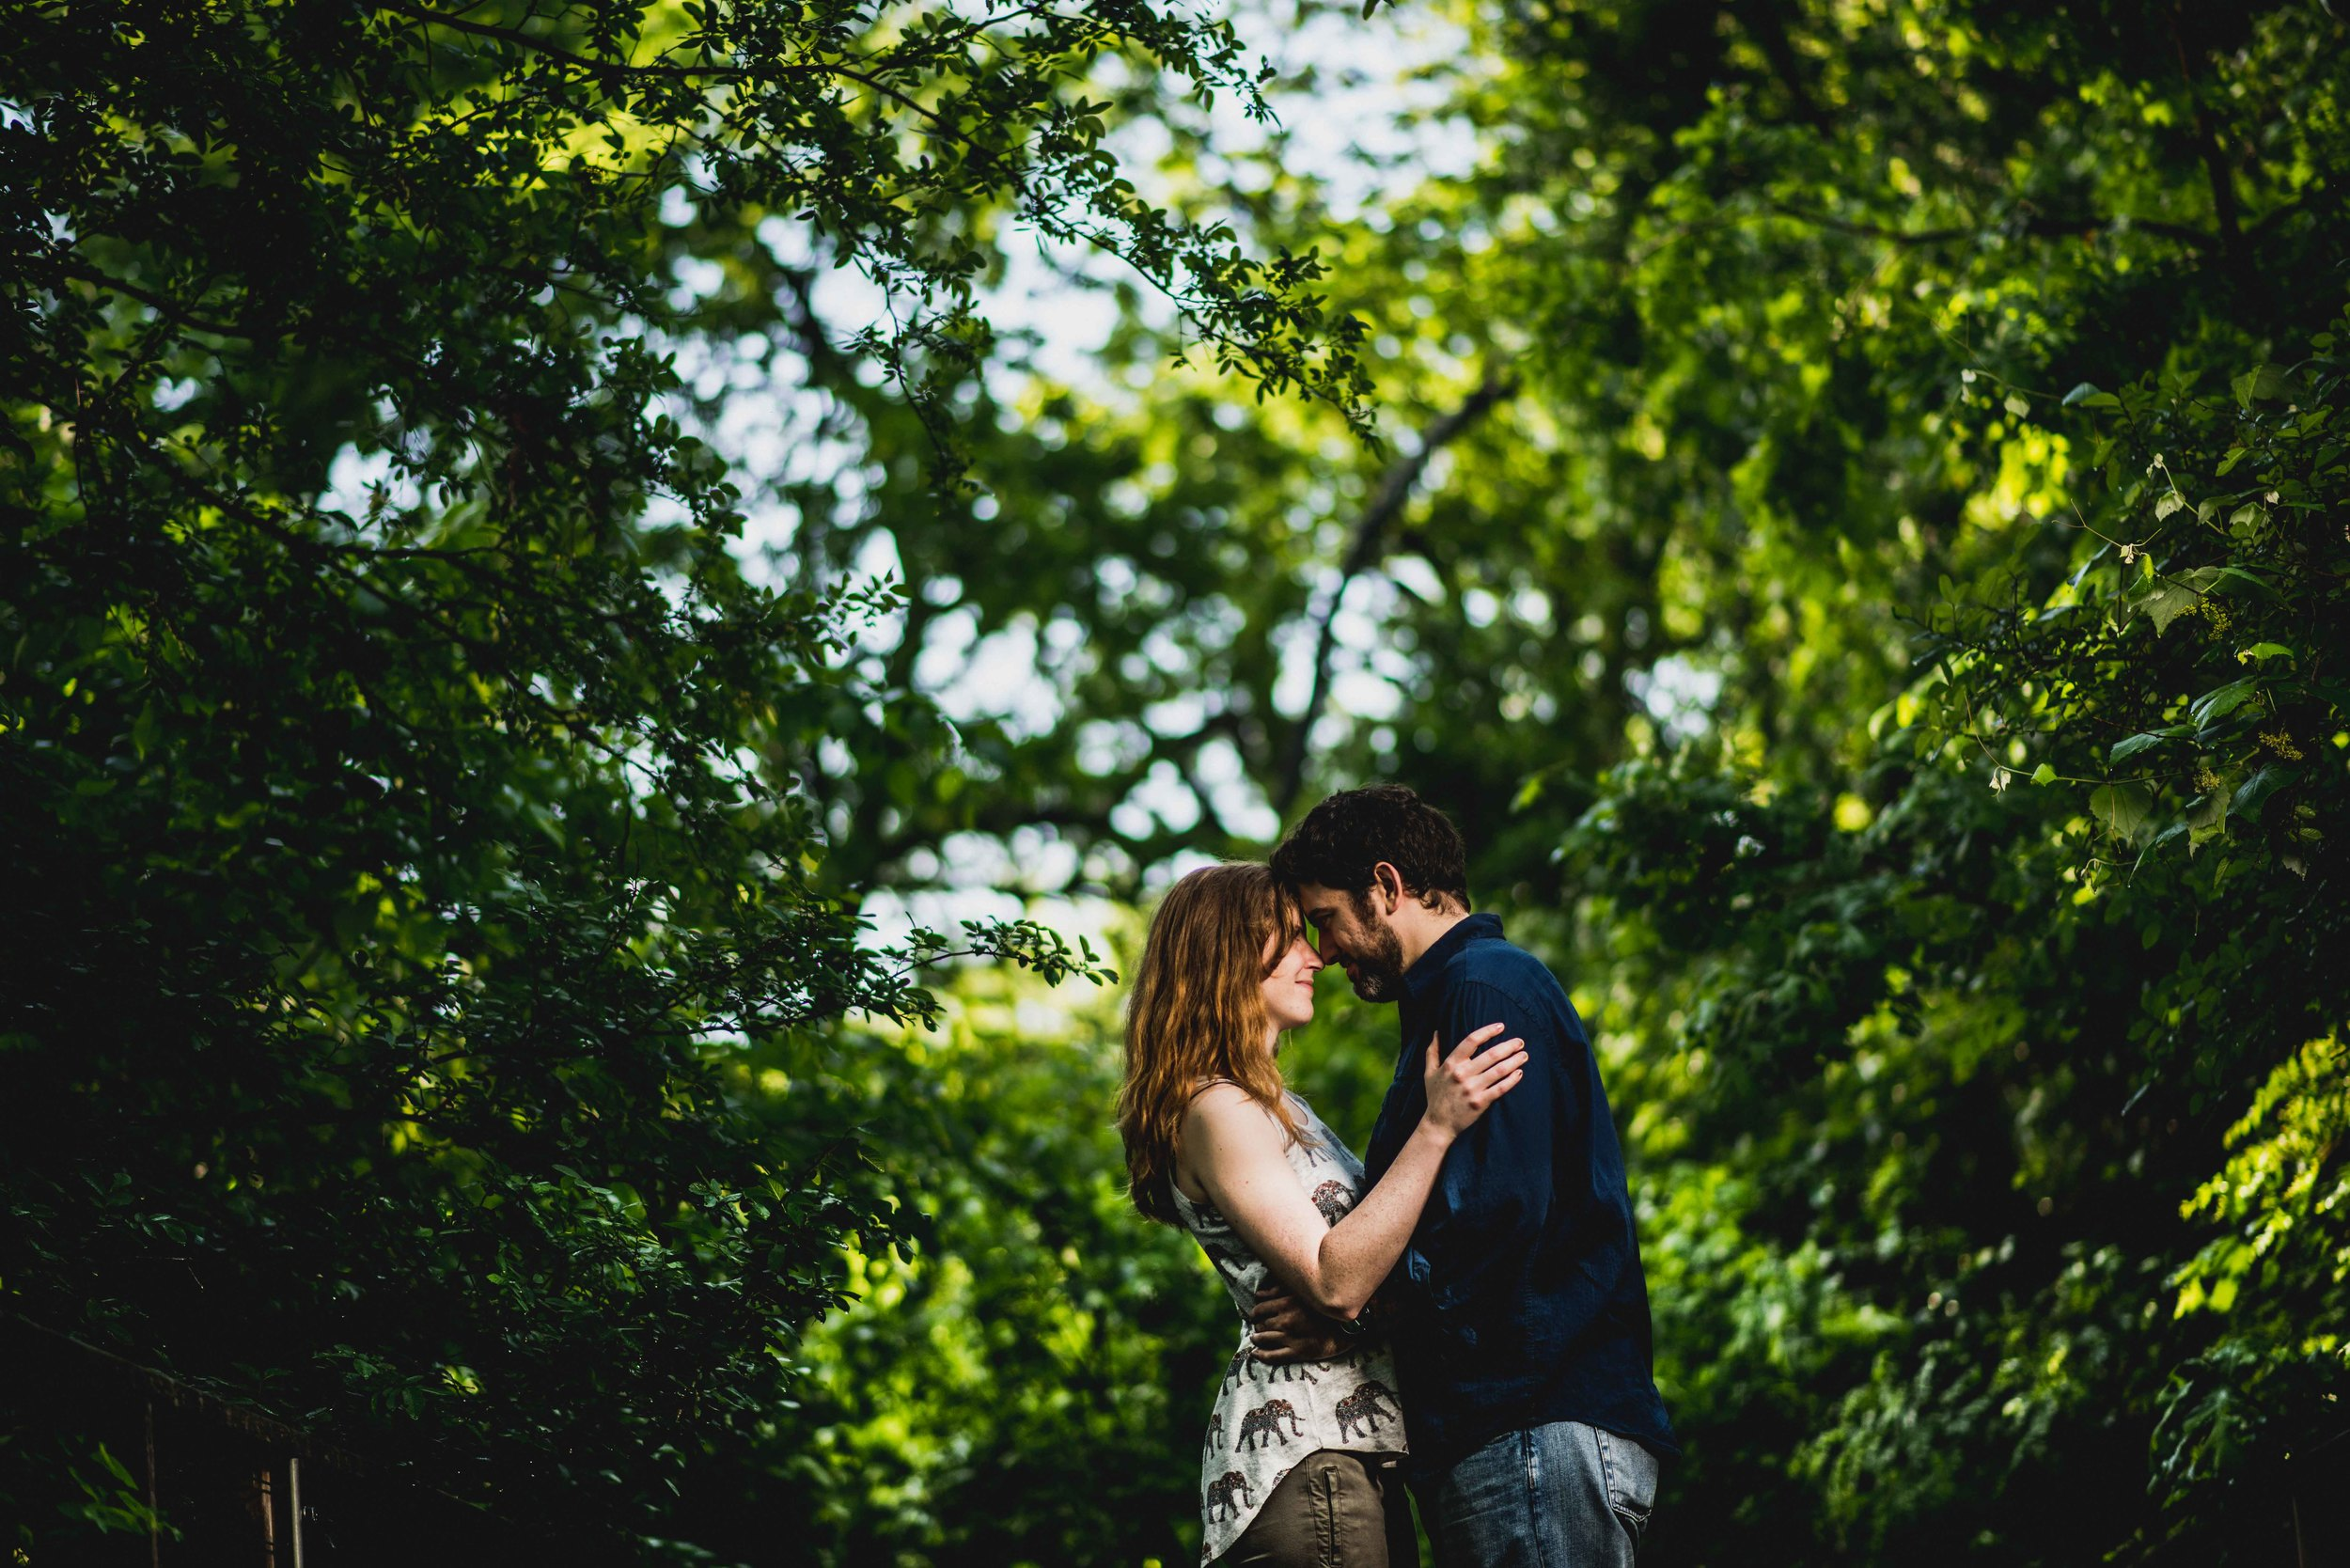 Fort Worth Botanical Garden Engagement Photos - Cody and Kathryn